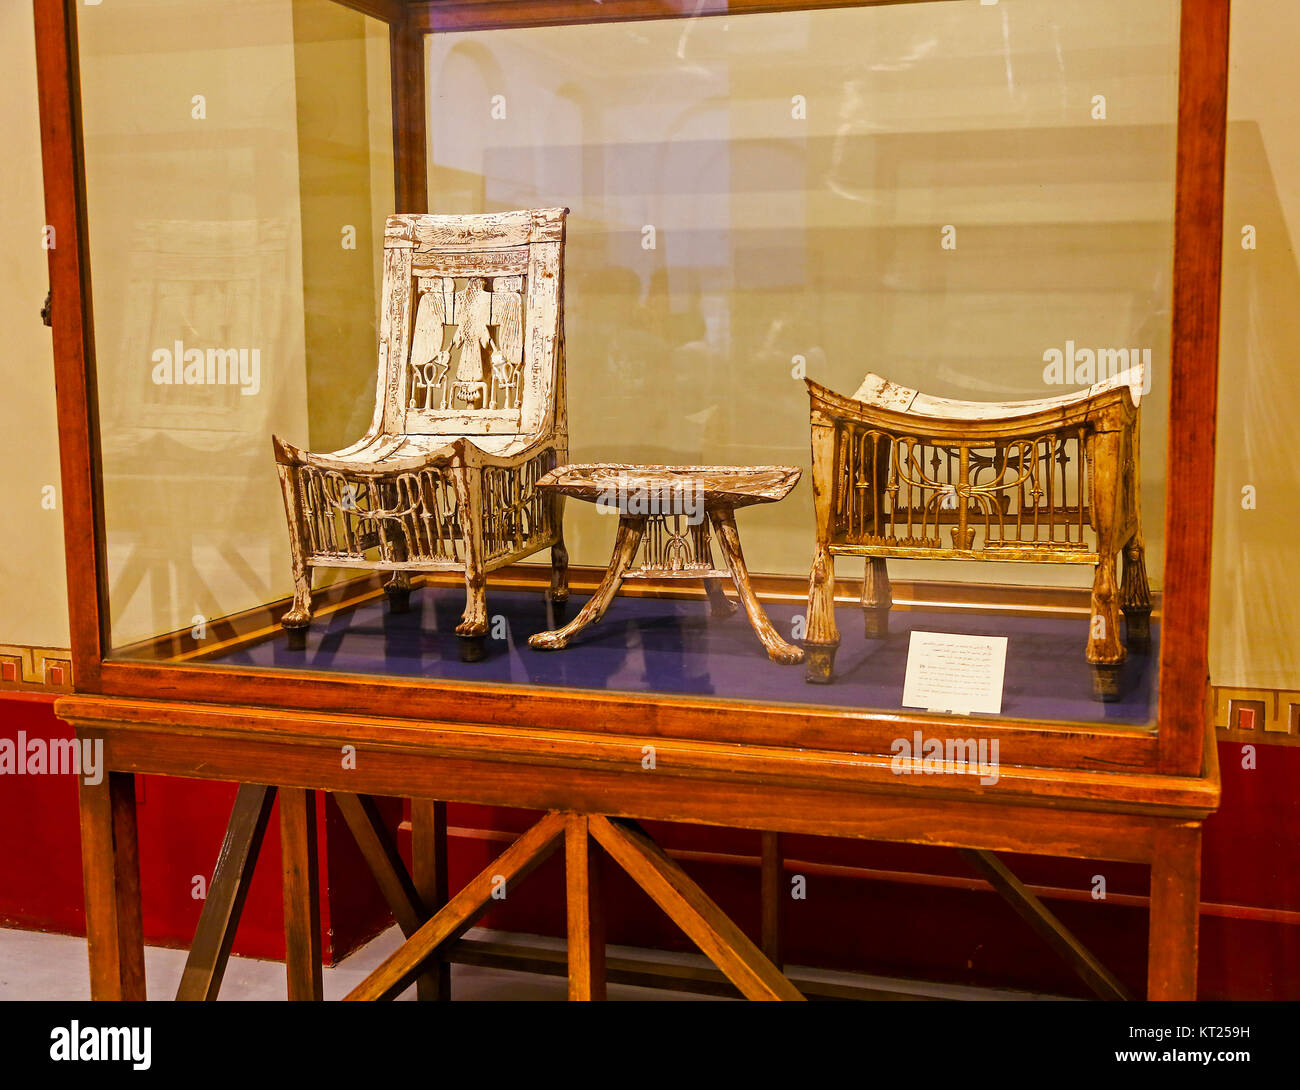 tutankhamuns-wooden-chair-table-and-stool-painted-white-from-king-KT259H.jpg